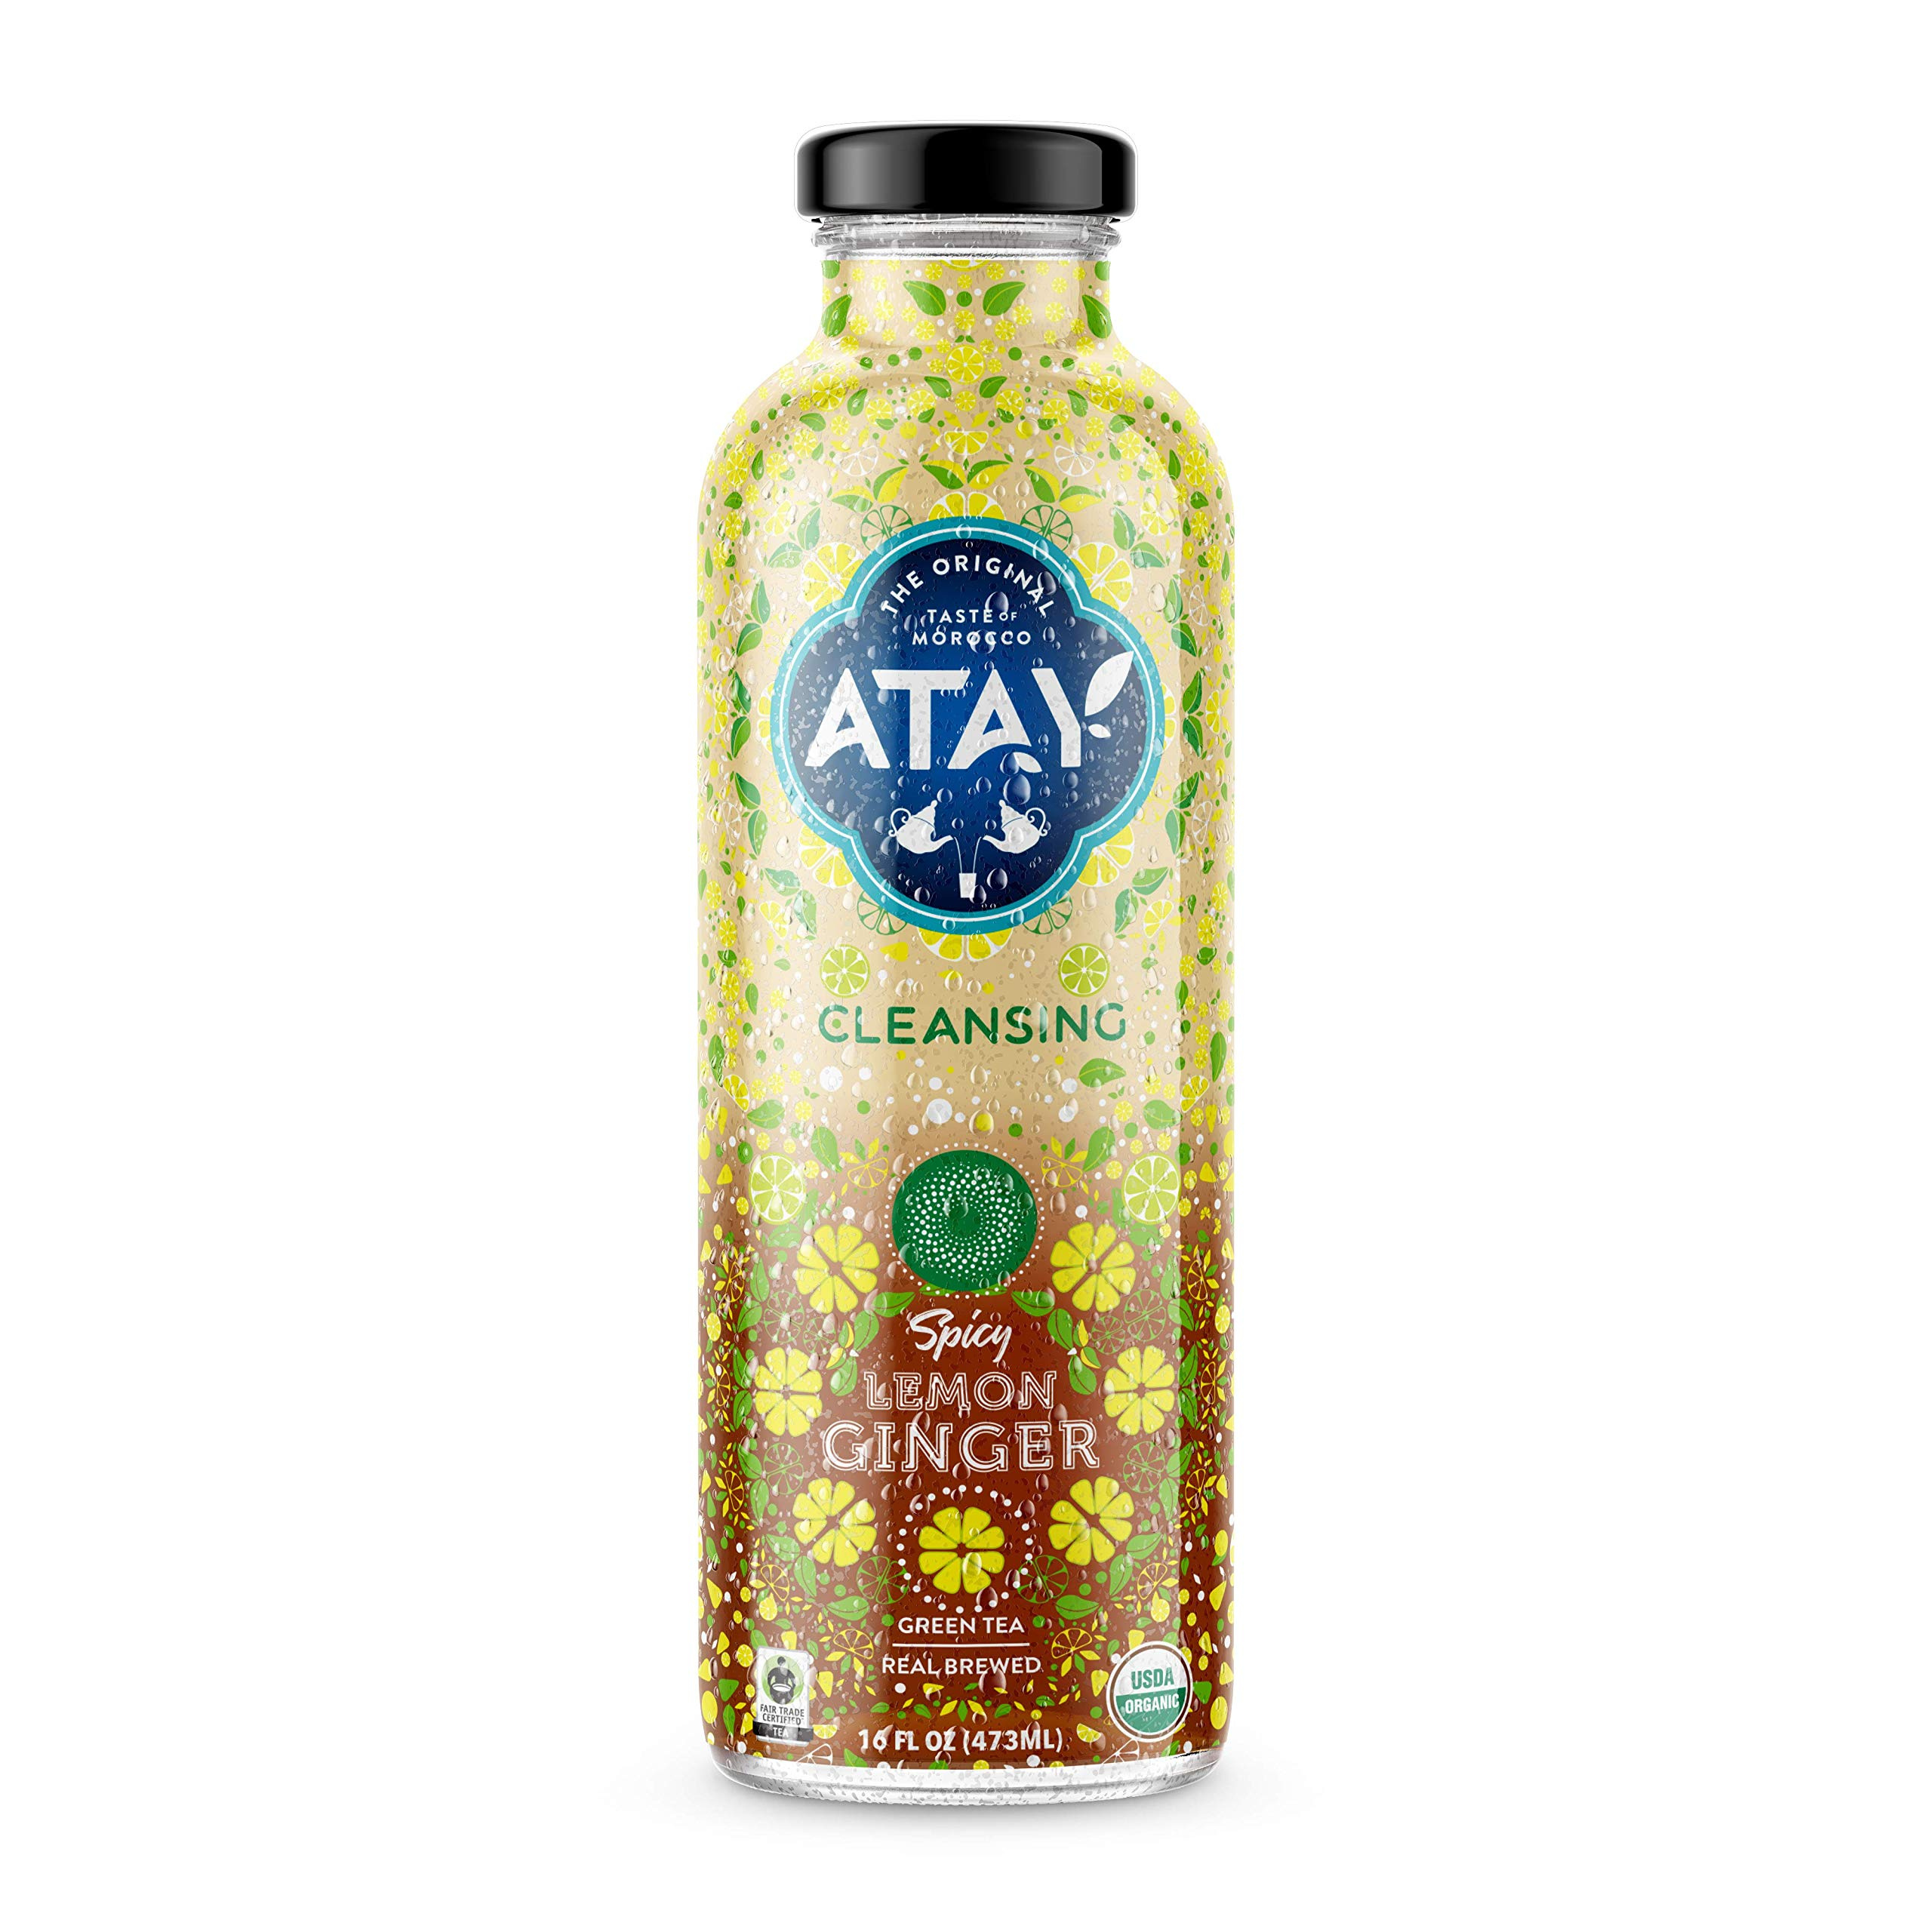 ATAY Moroccan Organic Lemon Ginger Iced Tea - Made With Organic Pure Green Tea And All-Natural Organic Stevia Leaf Extract For A Delicious and Subtle Sweet Flavor - 16 Oz, 8 Pack